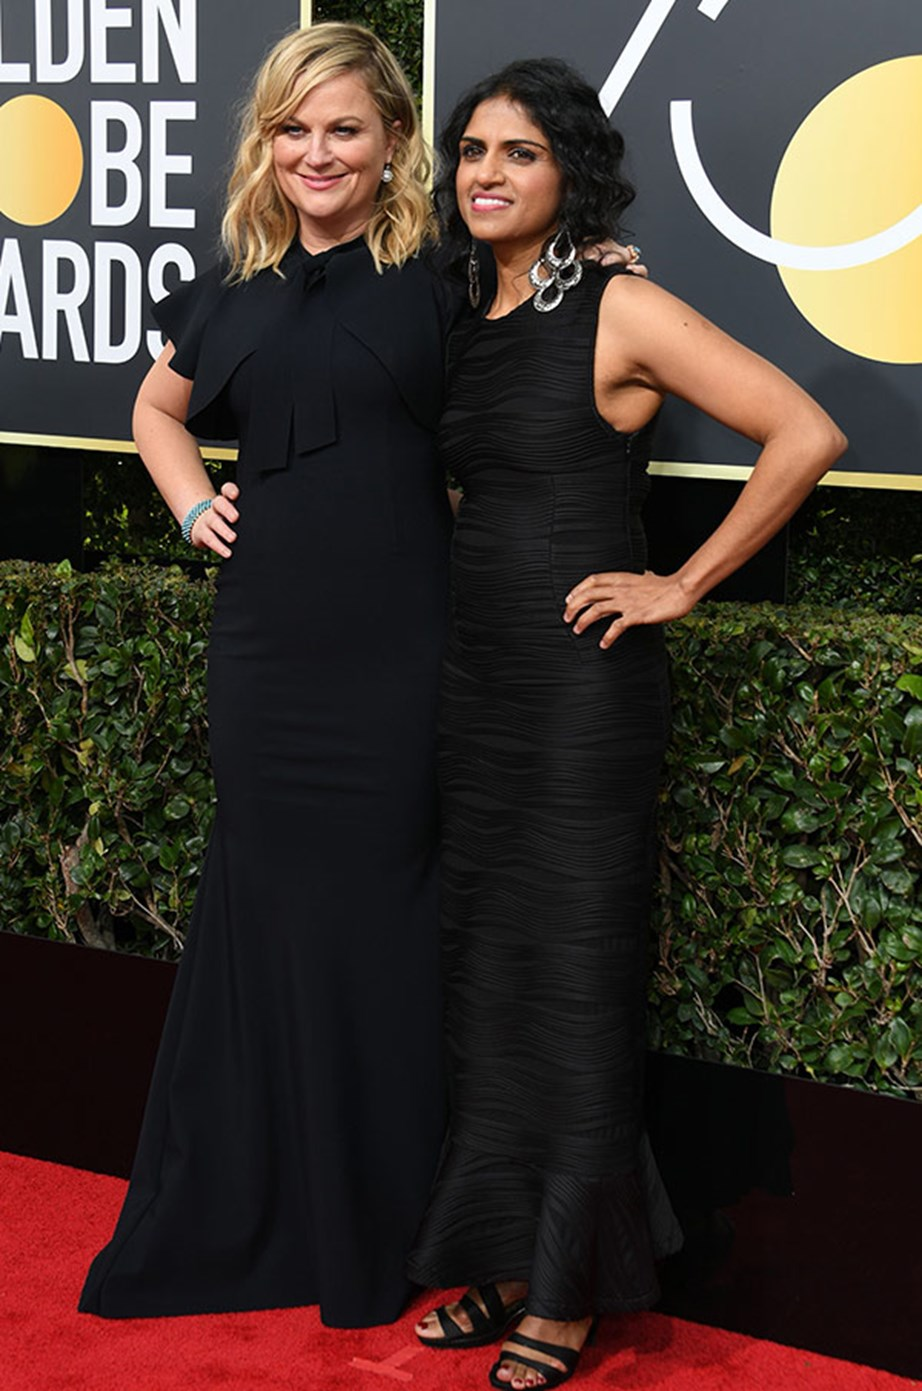 """**Amy Poehler** and Restaurant Opportunities Center United president **Saru Jayaraman**. Amy also posted on Instagram, captioning """"Me and my date Saru Jayaraman and my wife Ann Perkins [**Rashida Jones**]! Army of Queens coming for ya!"""""""